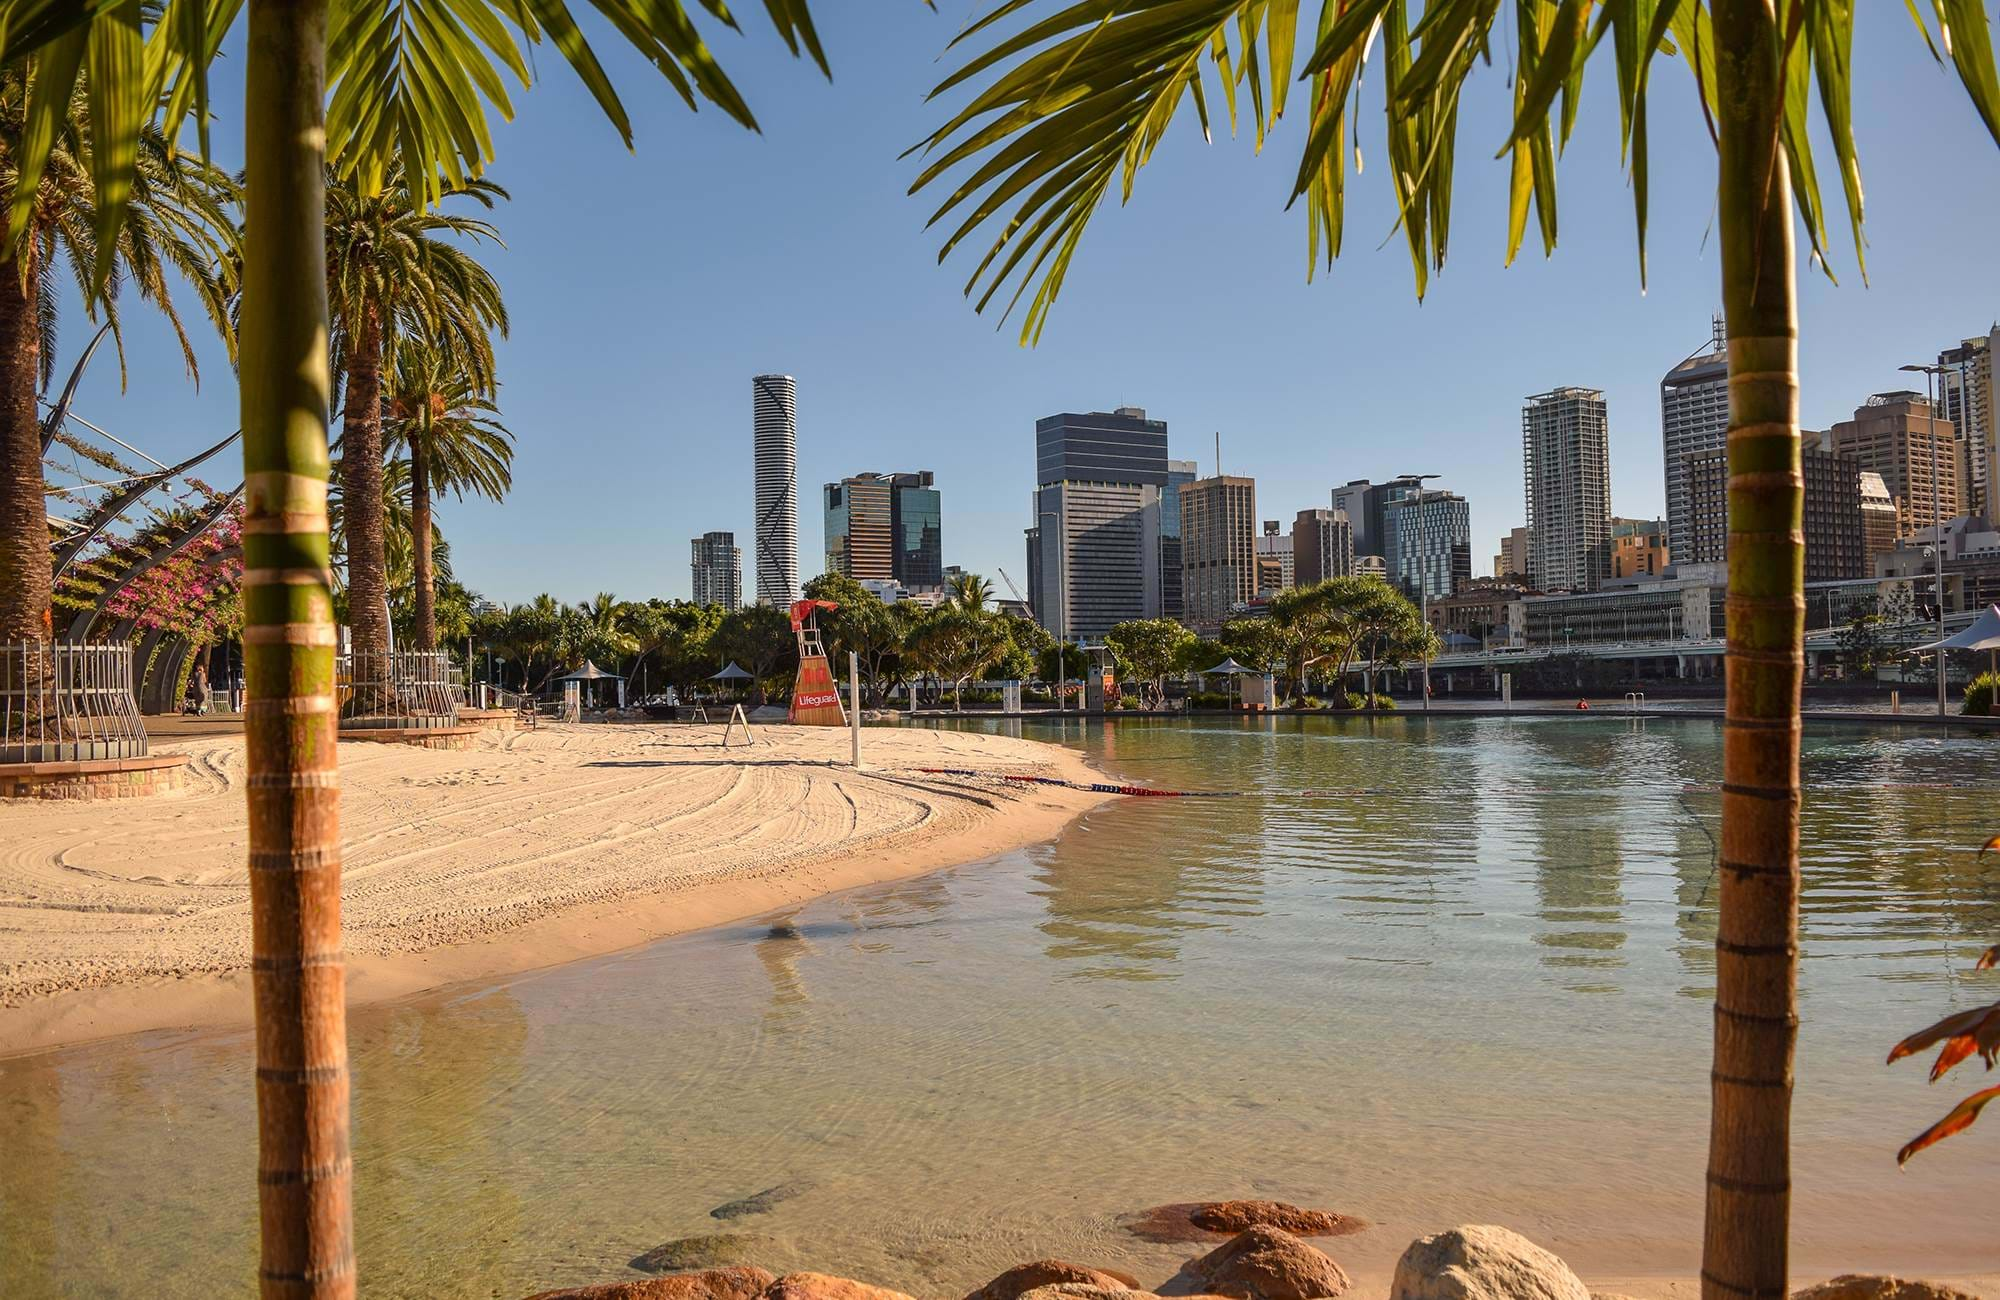 brisbane-view-of-the-south-bank-artificial-beach-and-the-city-skyline-cover